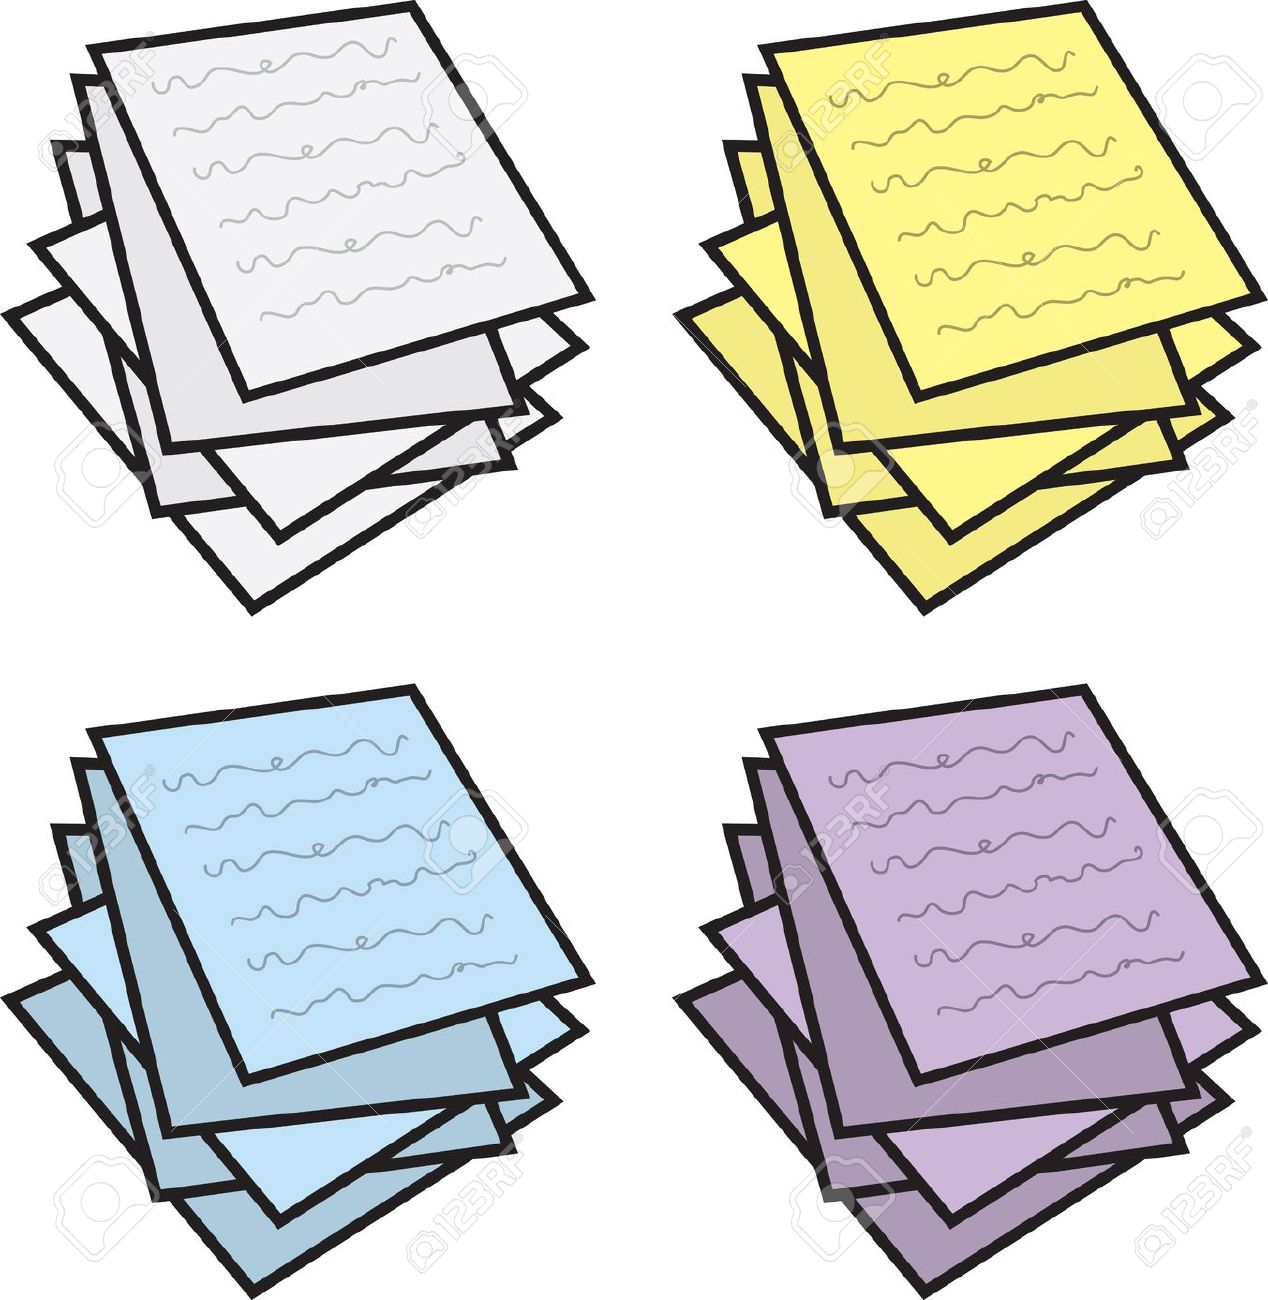 Piles of paper clipart.